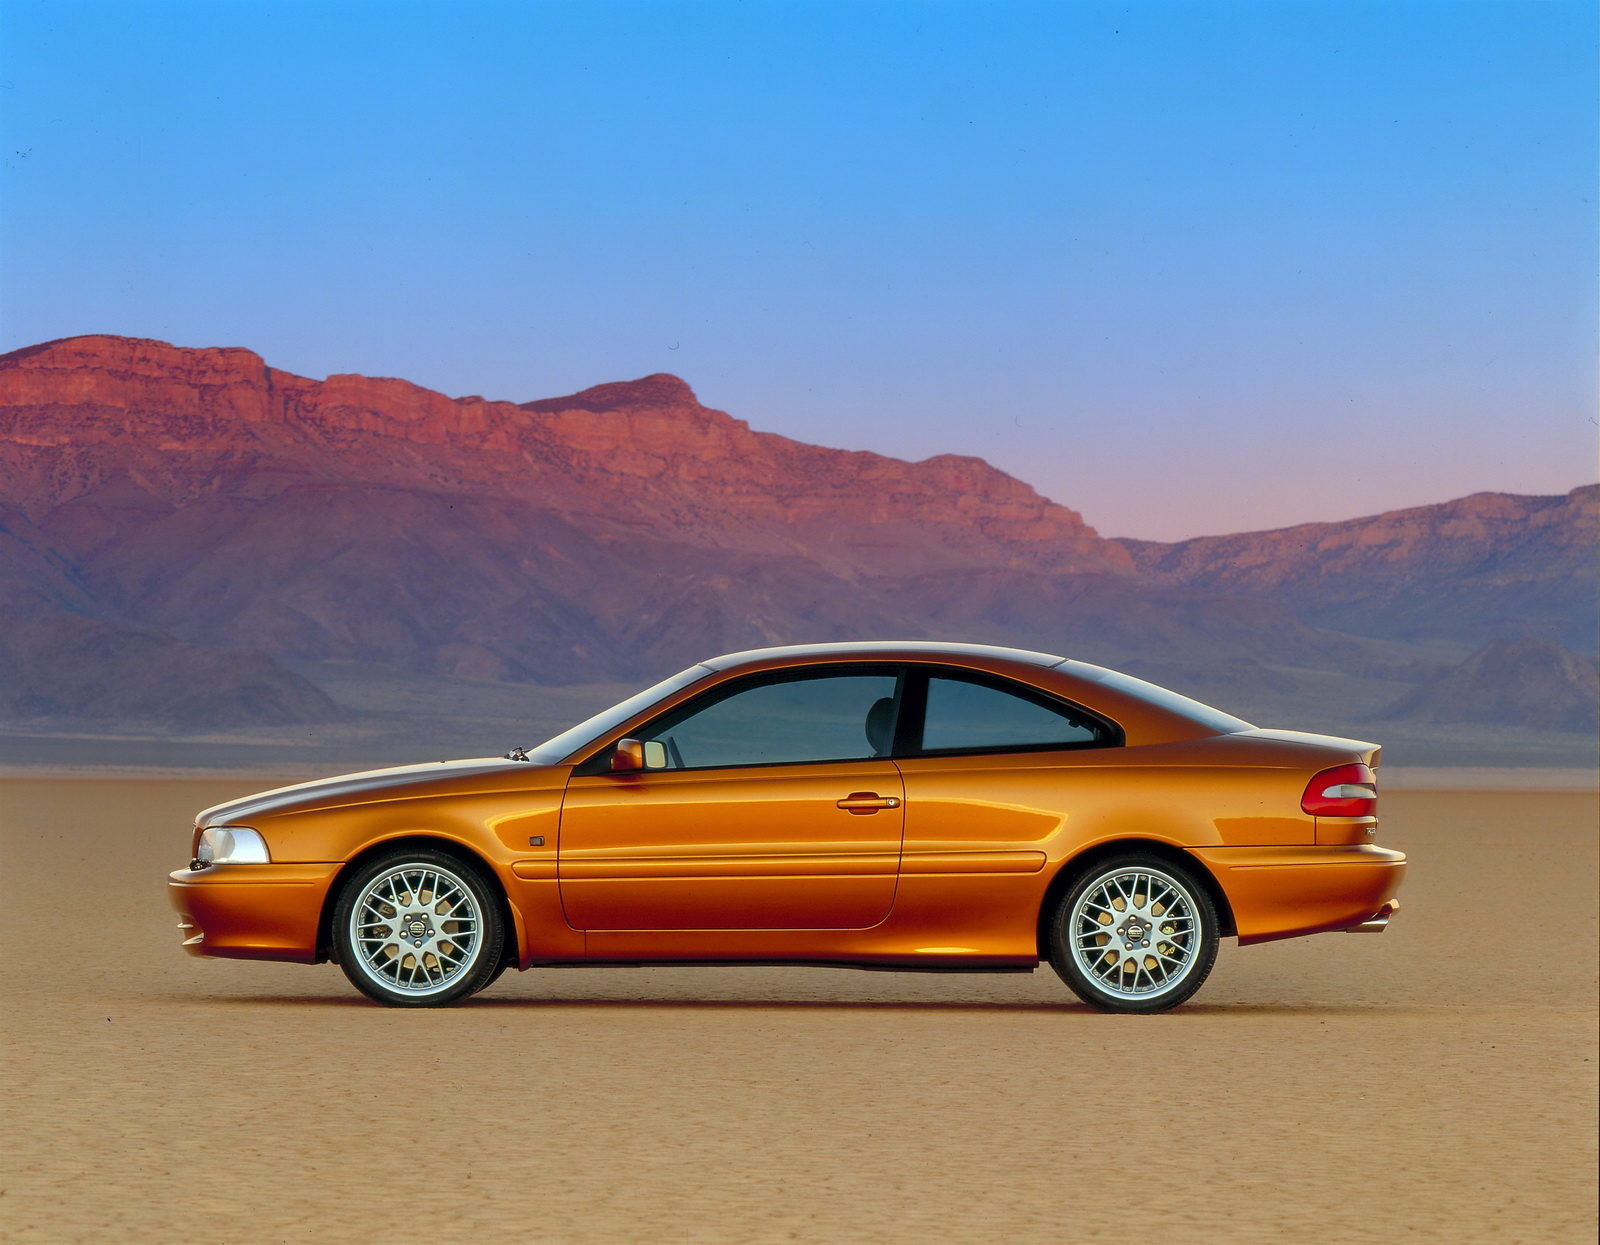 Volvo C70 Celebrates 20th Birthday, Still Looks Sleek - autoevolution